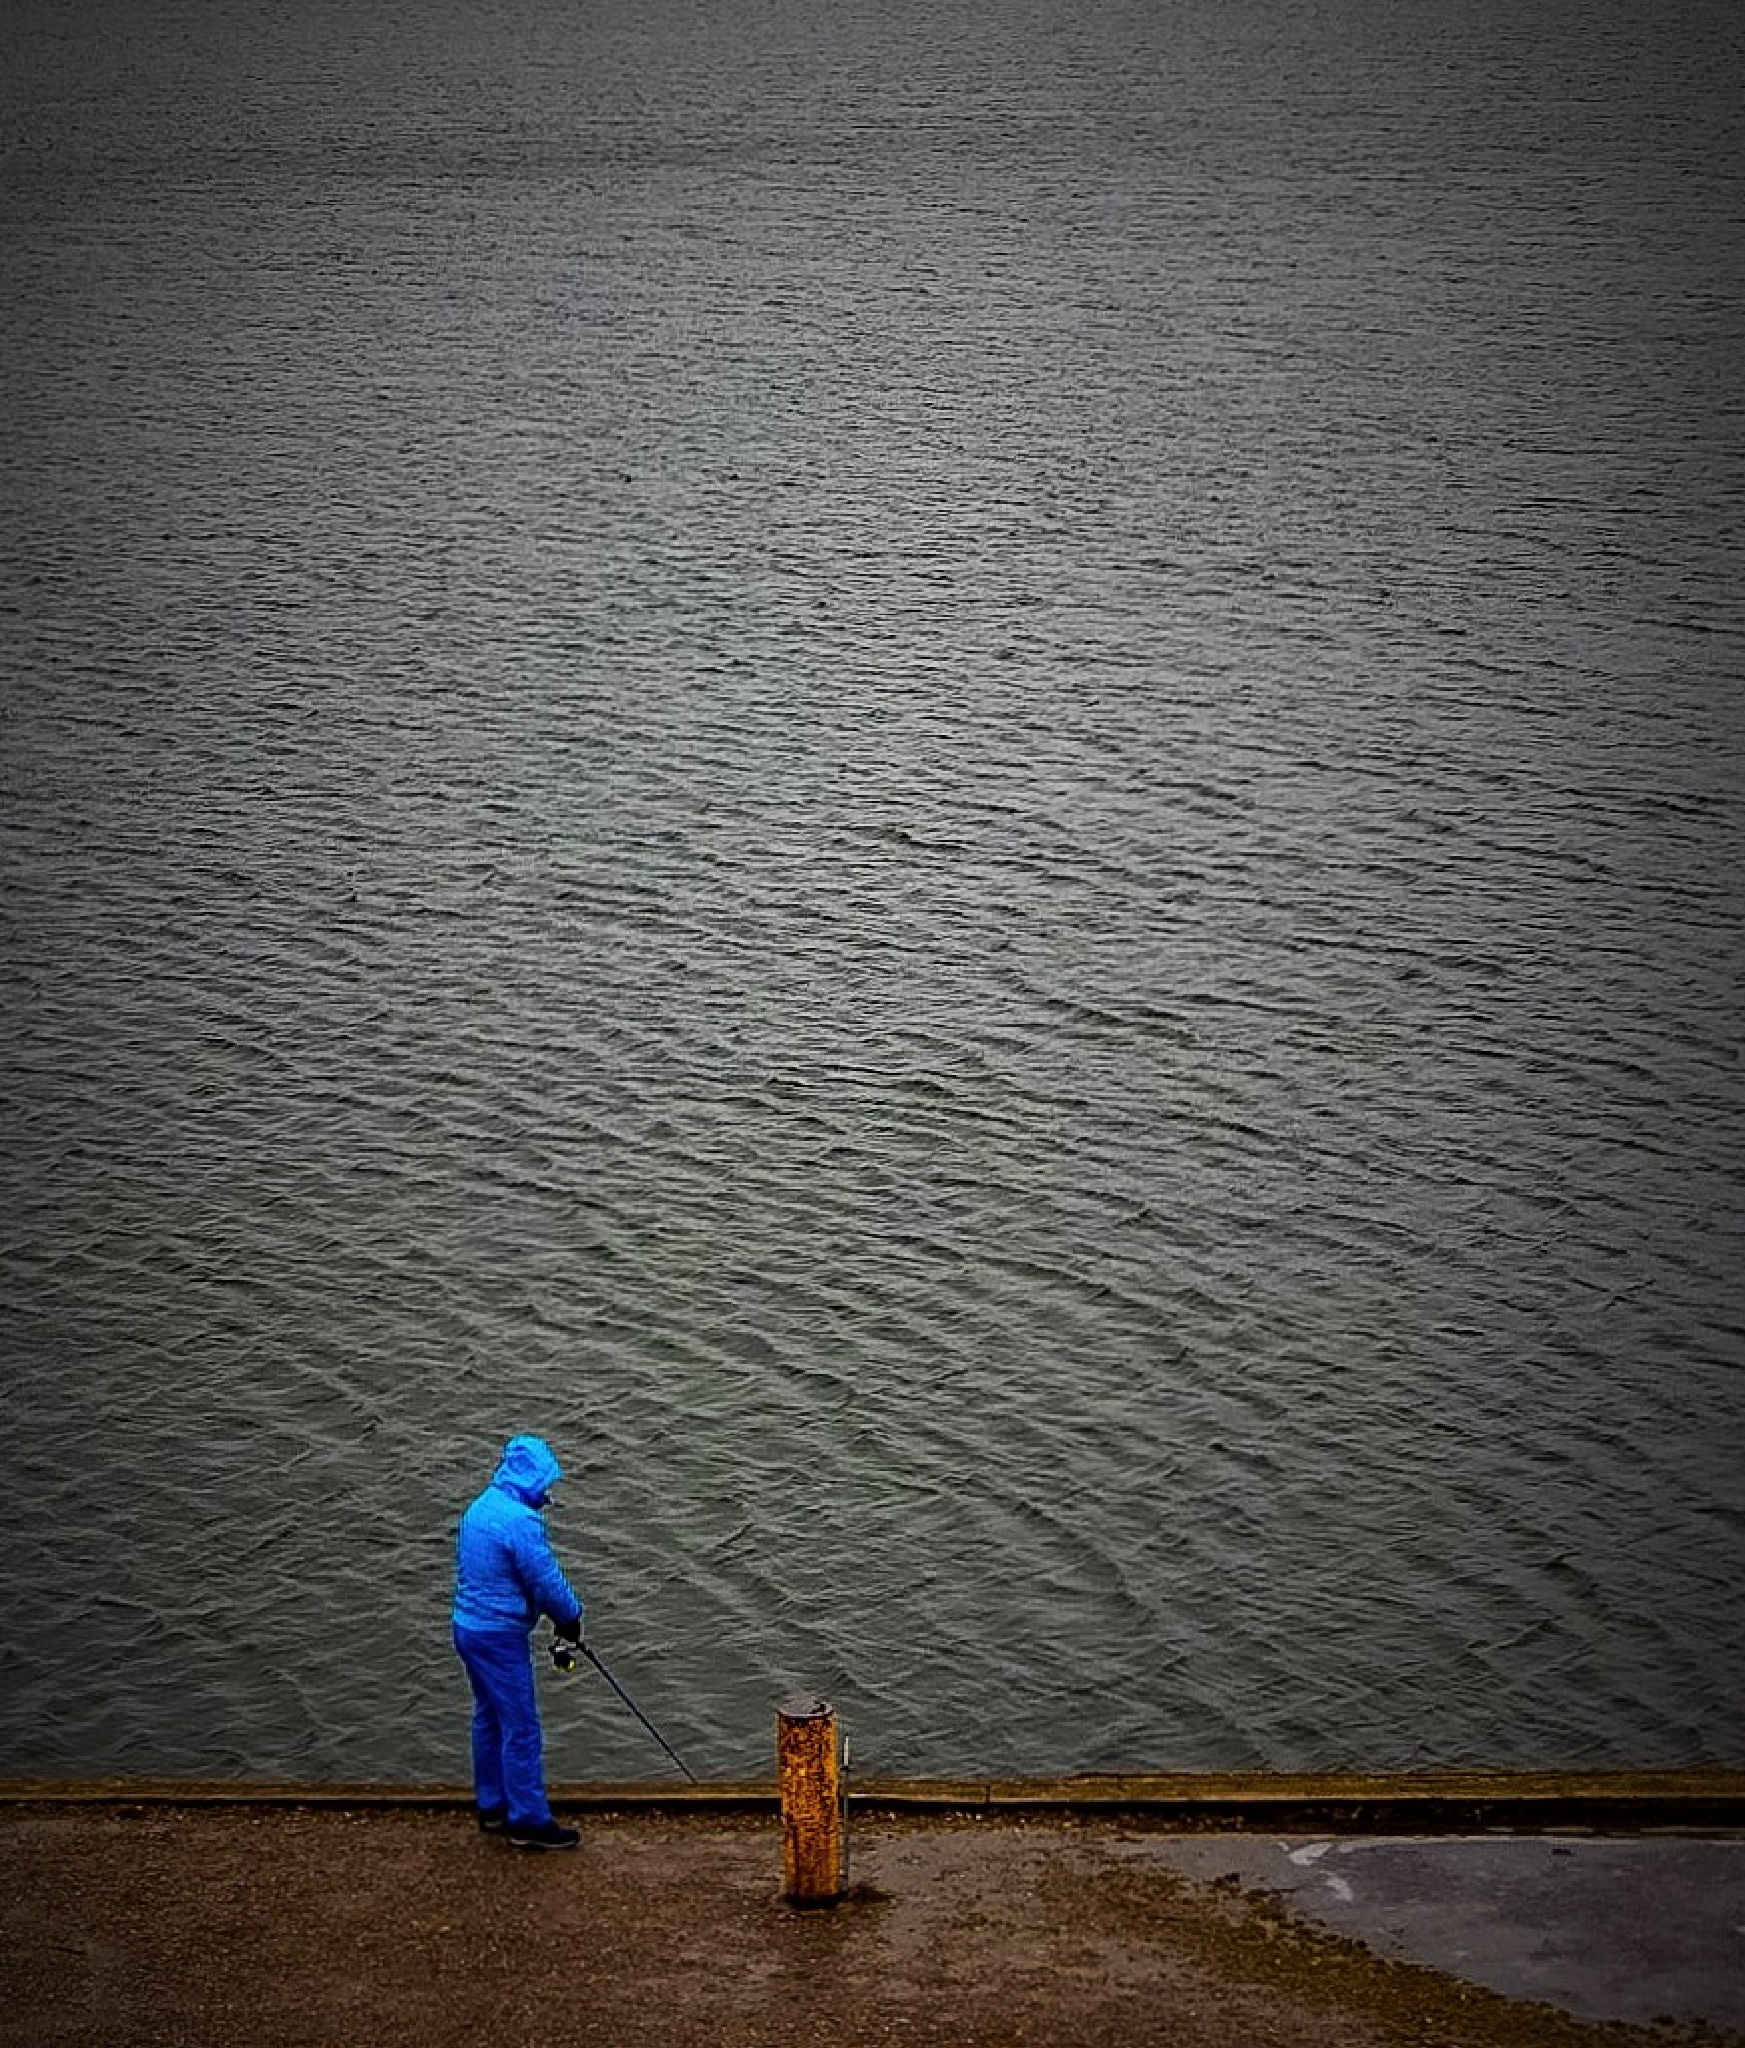 Lonesome fisherman, no fish today.  by Ronnie Ericson